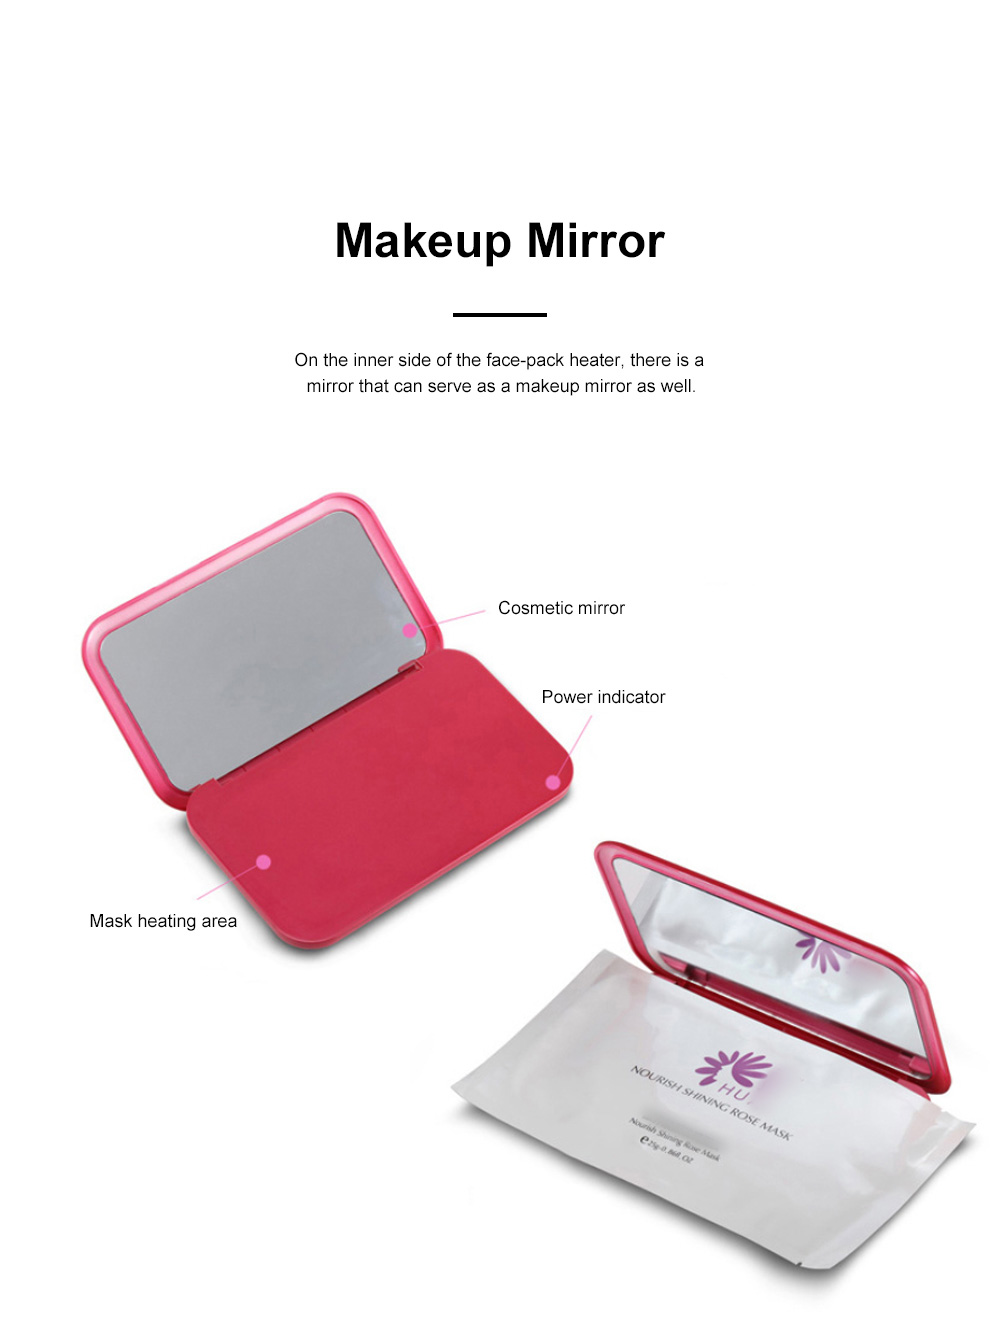 Dual Use Portable Makeup Mirror Facial Mask Heater for Family Use Gift Choice Rechargeable Face-pack Heating Instrument 5